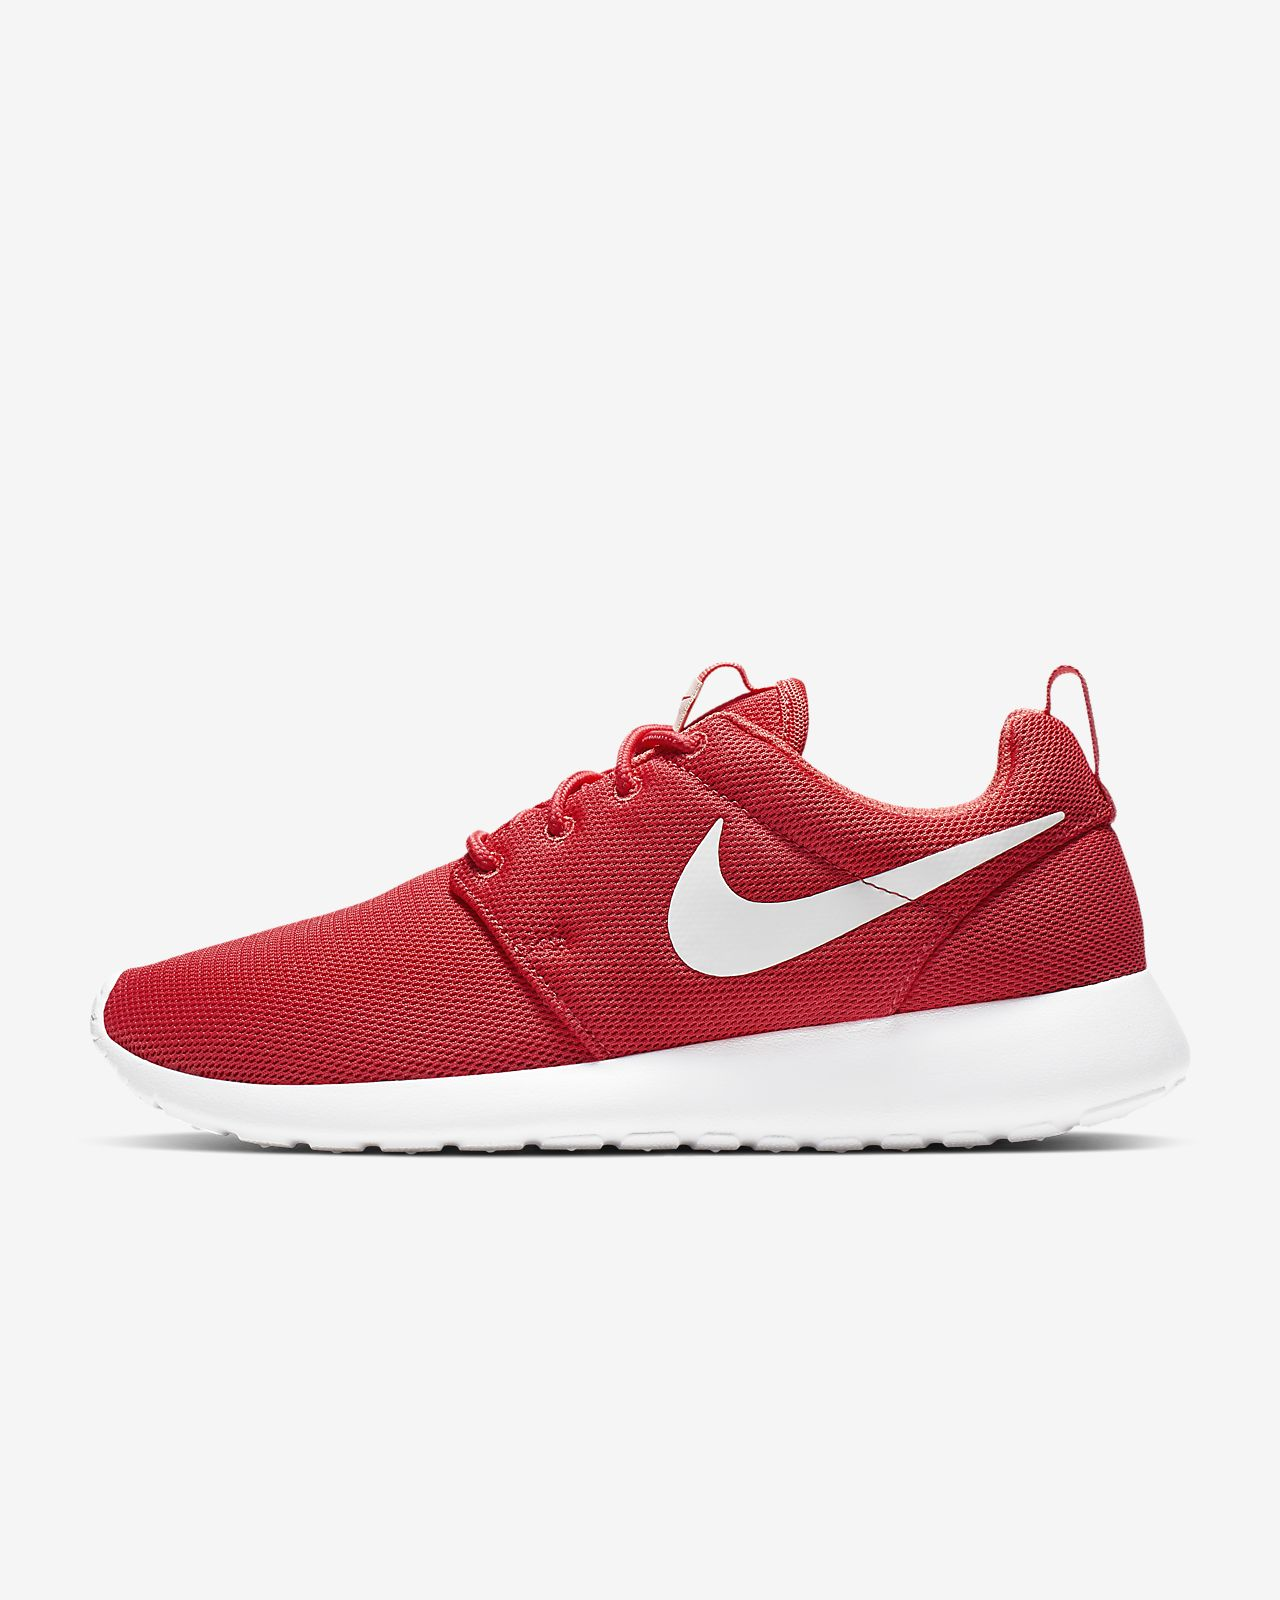 premium selection c3bb9 a81b7 ... Nike Roshe One Women s Shoe